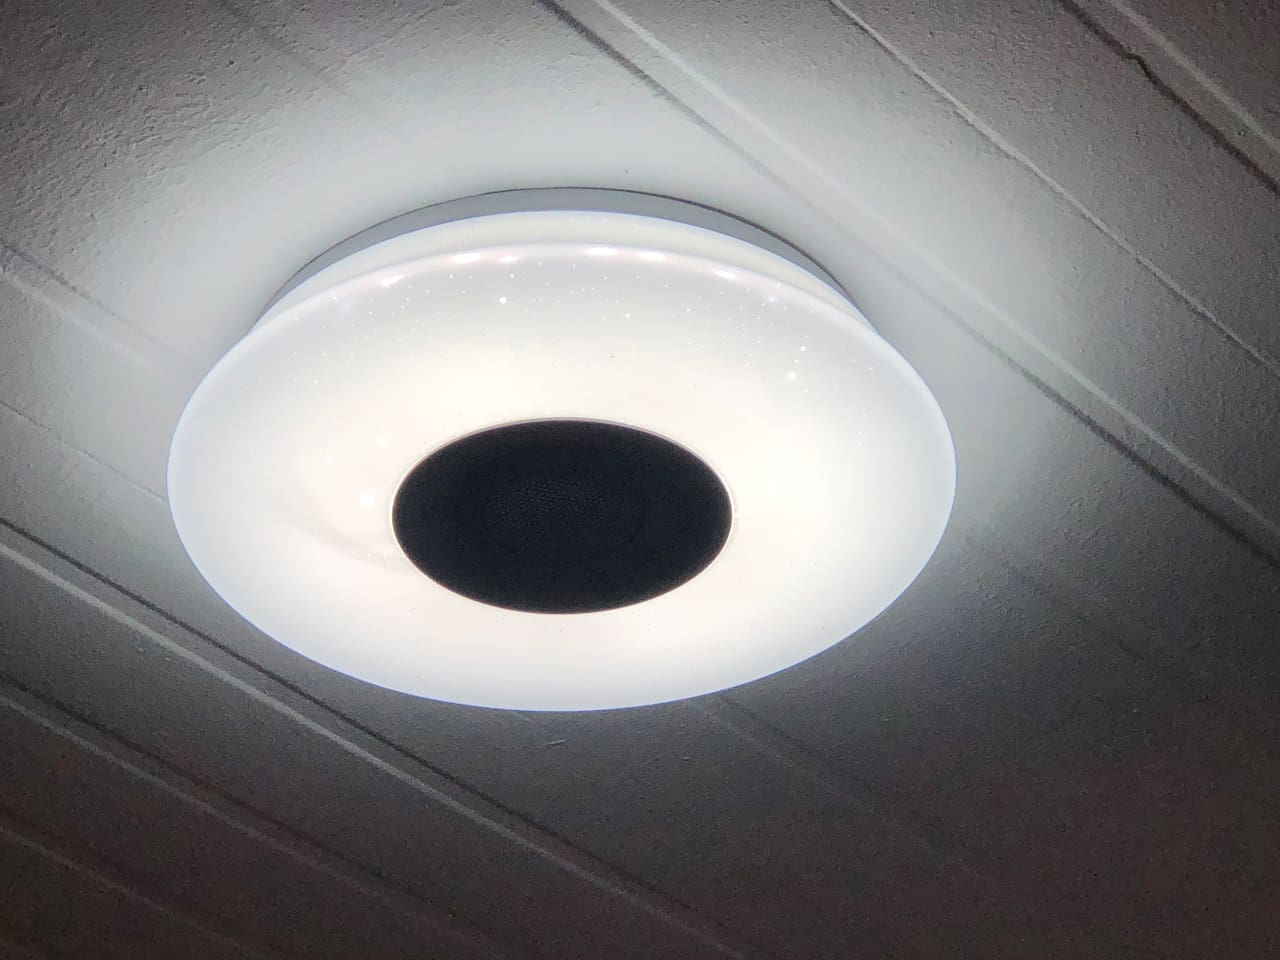 Ceiling light at the bedroom has 3 colors (Daylight, warm white and cool white) and a Bluetooth speaker that you can connect on your cellphones or gadgets.